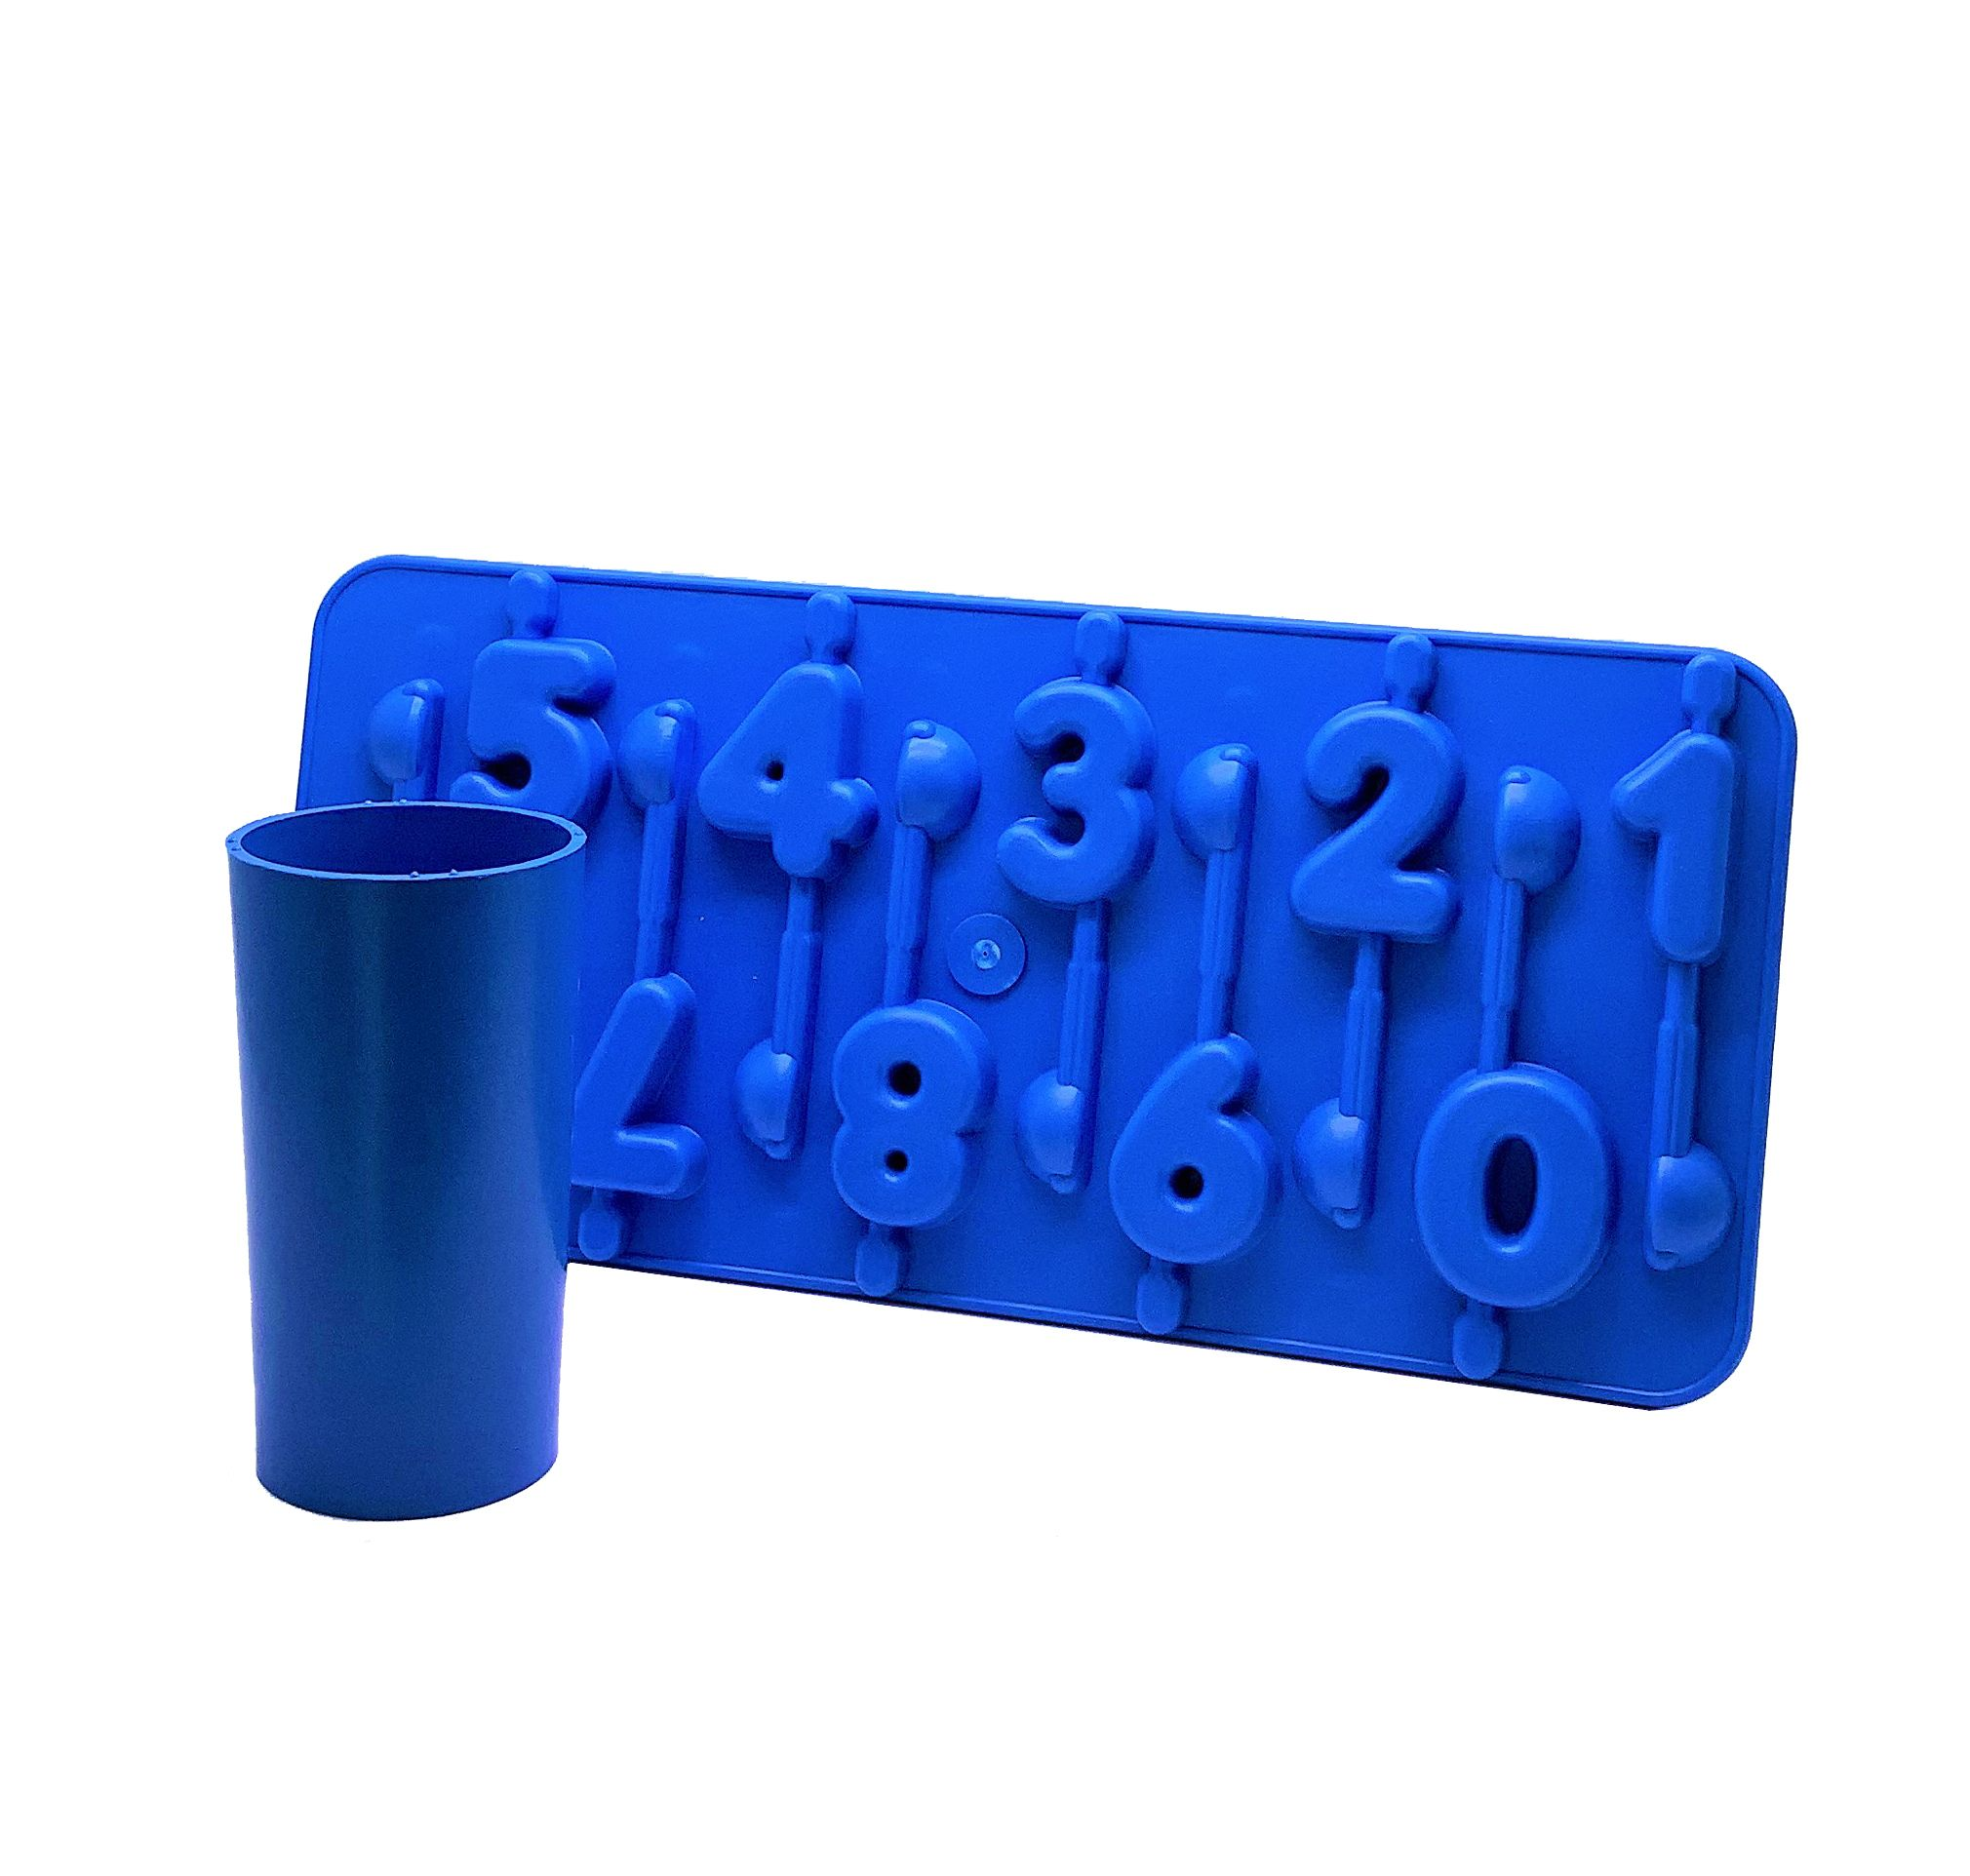 45mm tall Cylindrical Rigid plastic candle mould